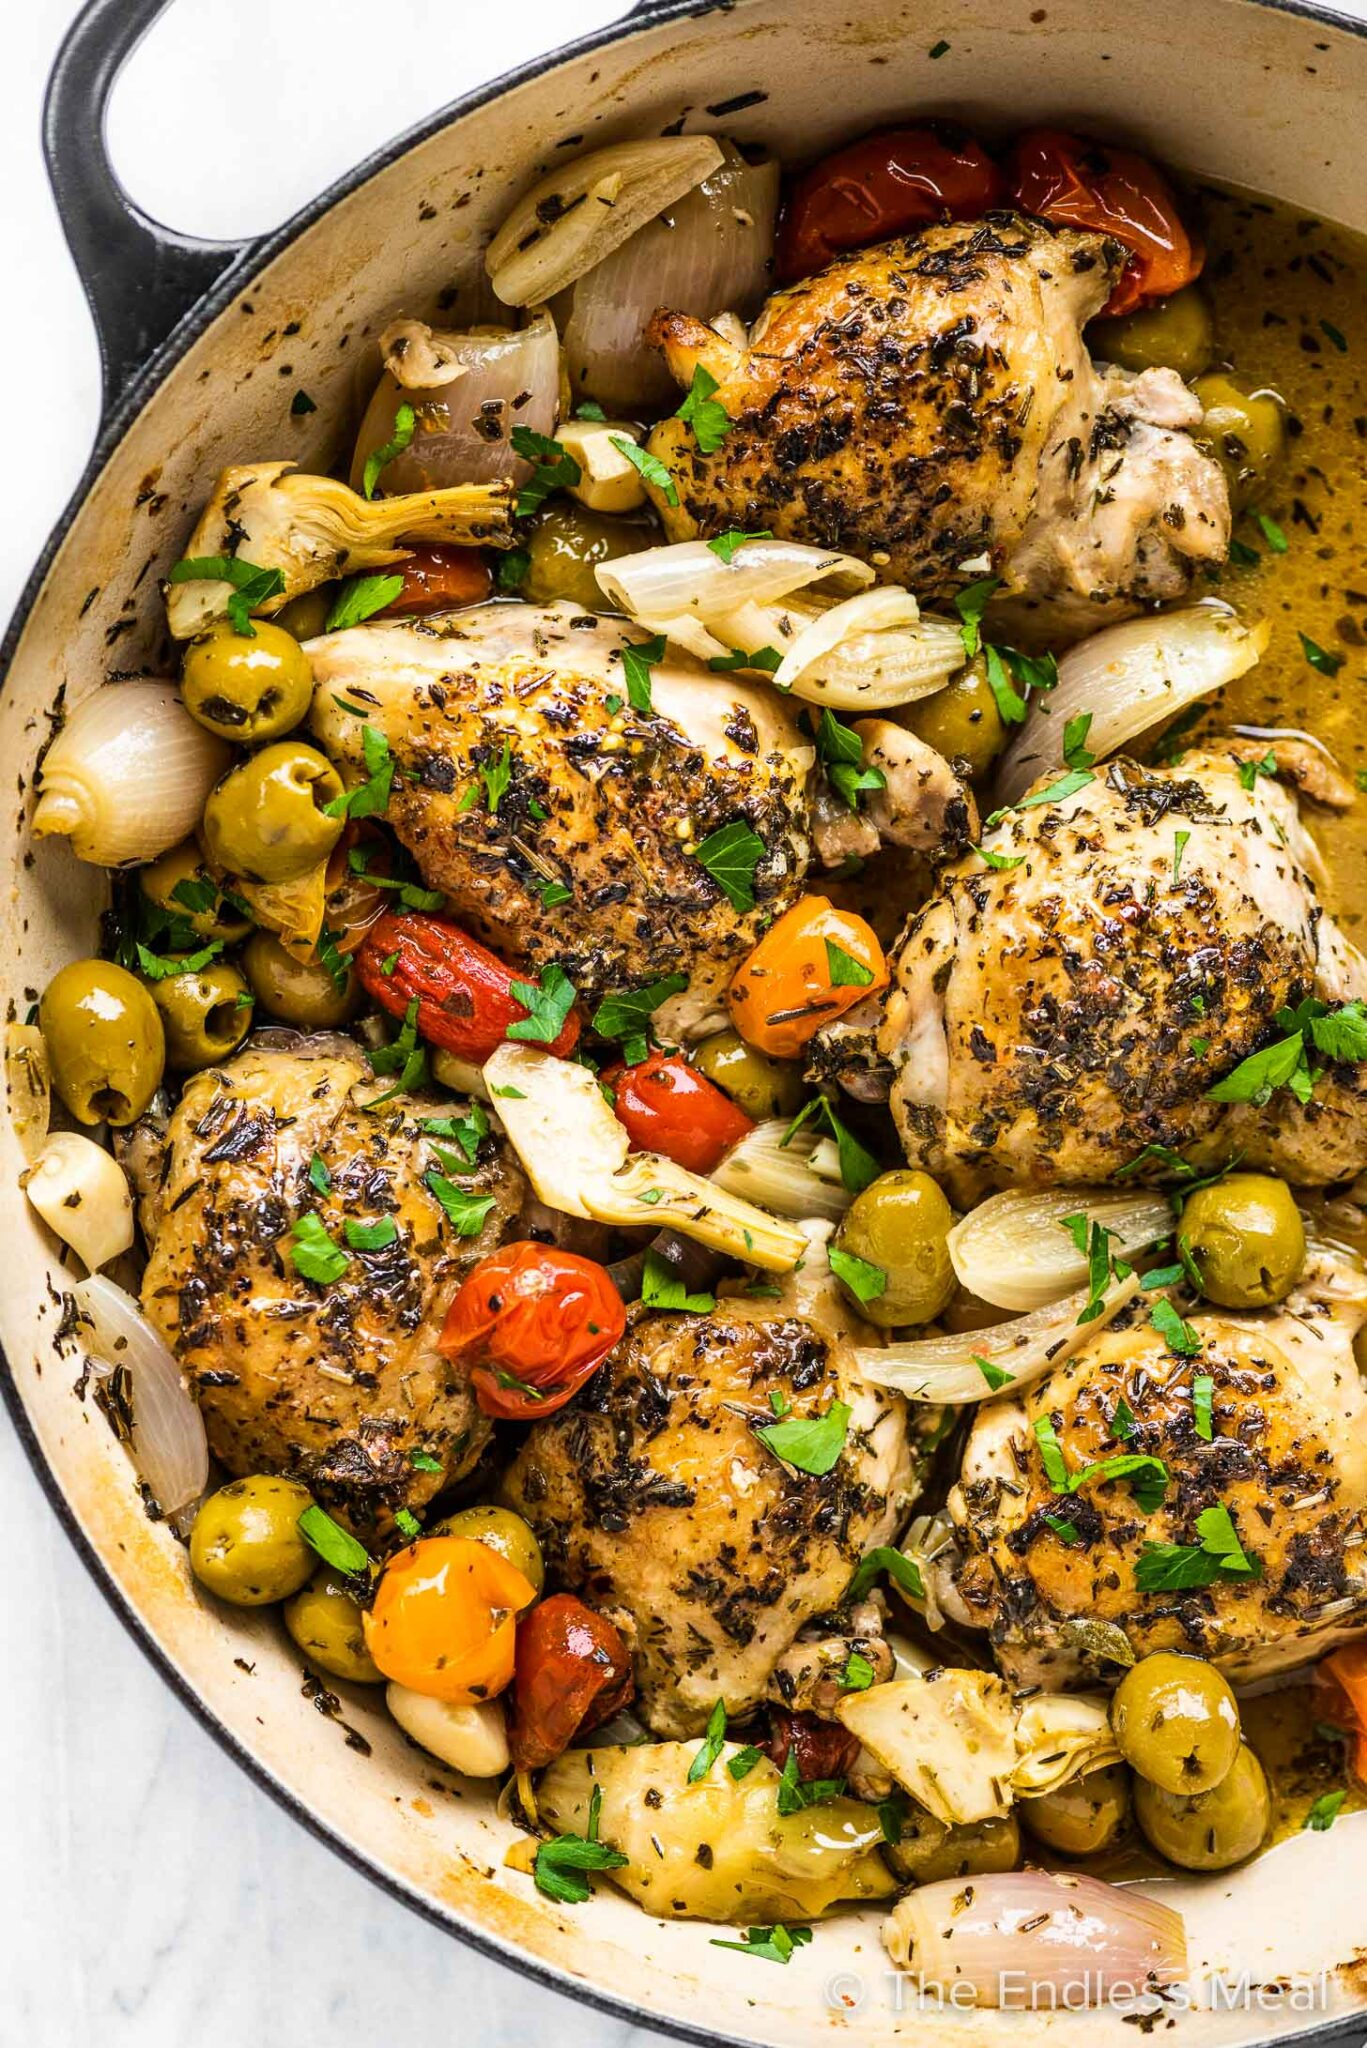 Braised chicken provencal in a pot.